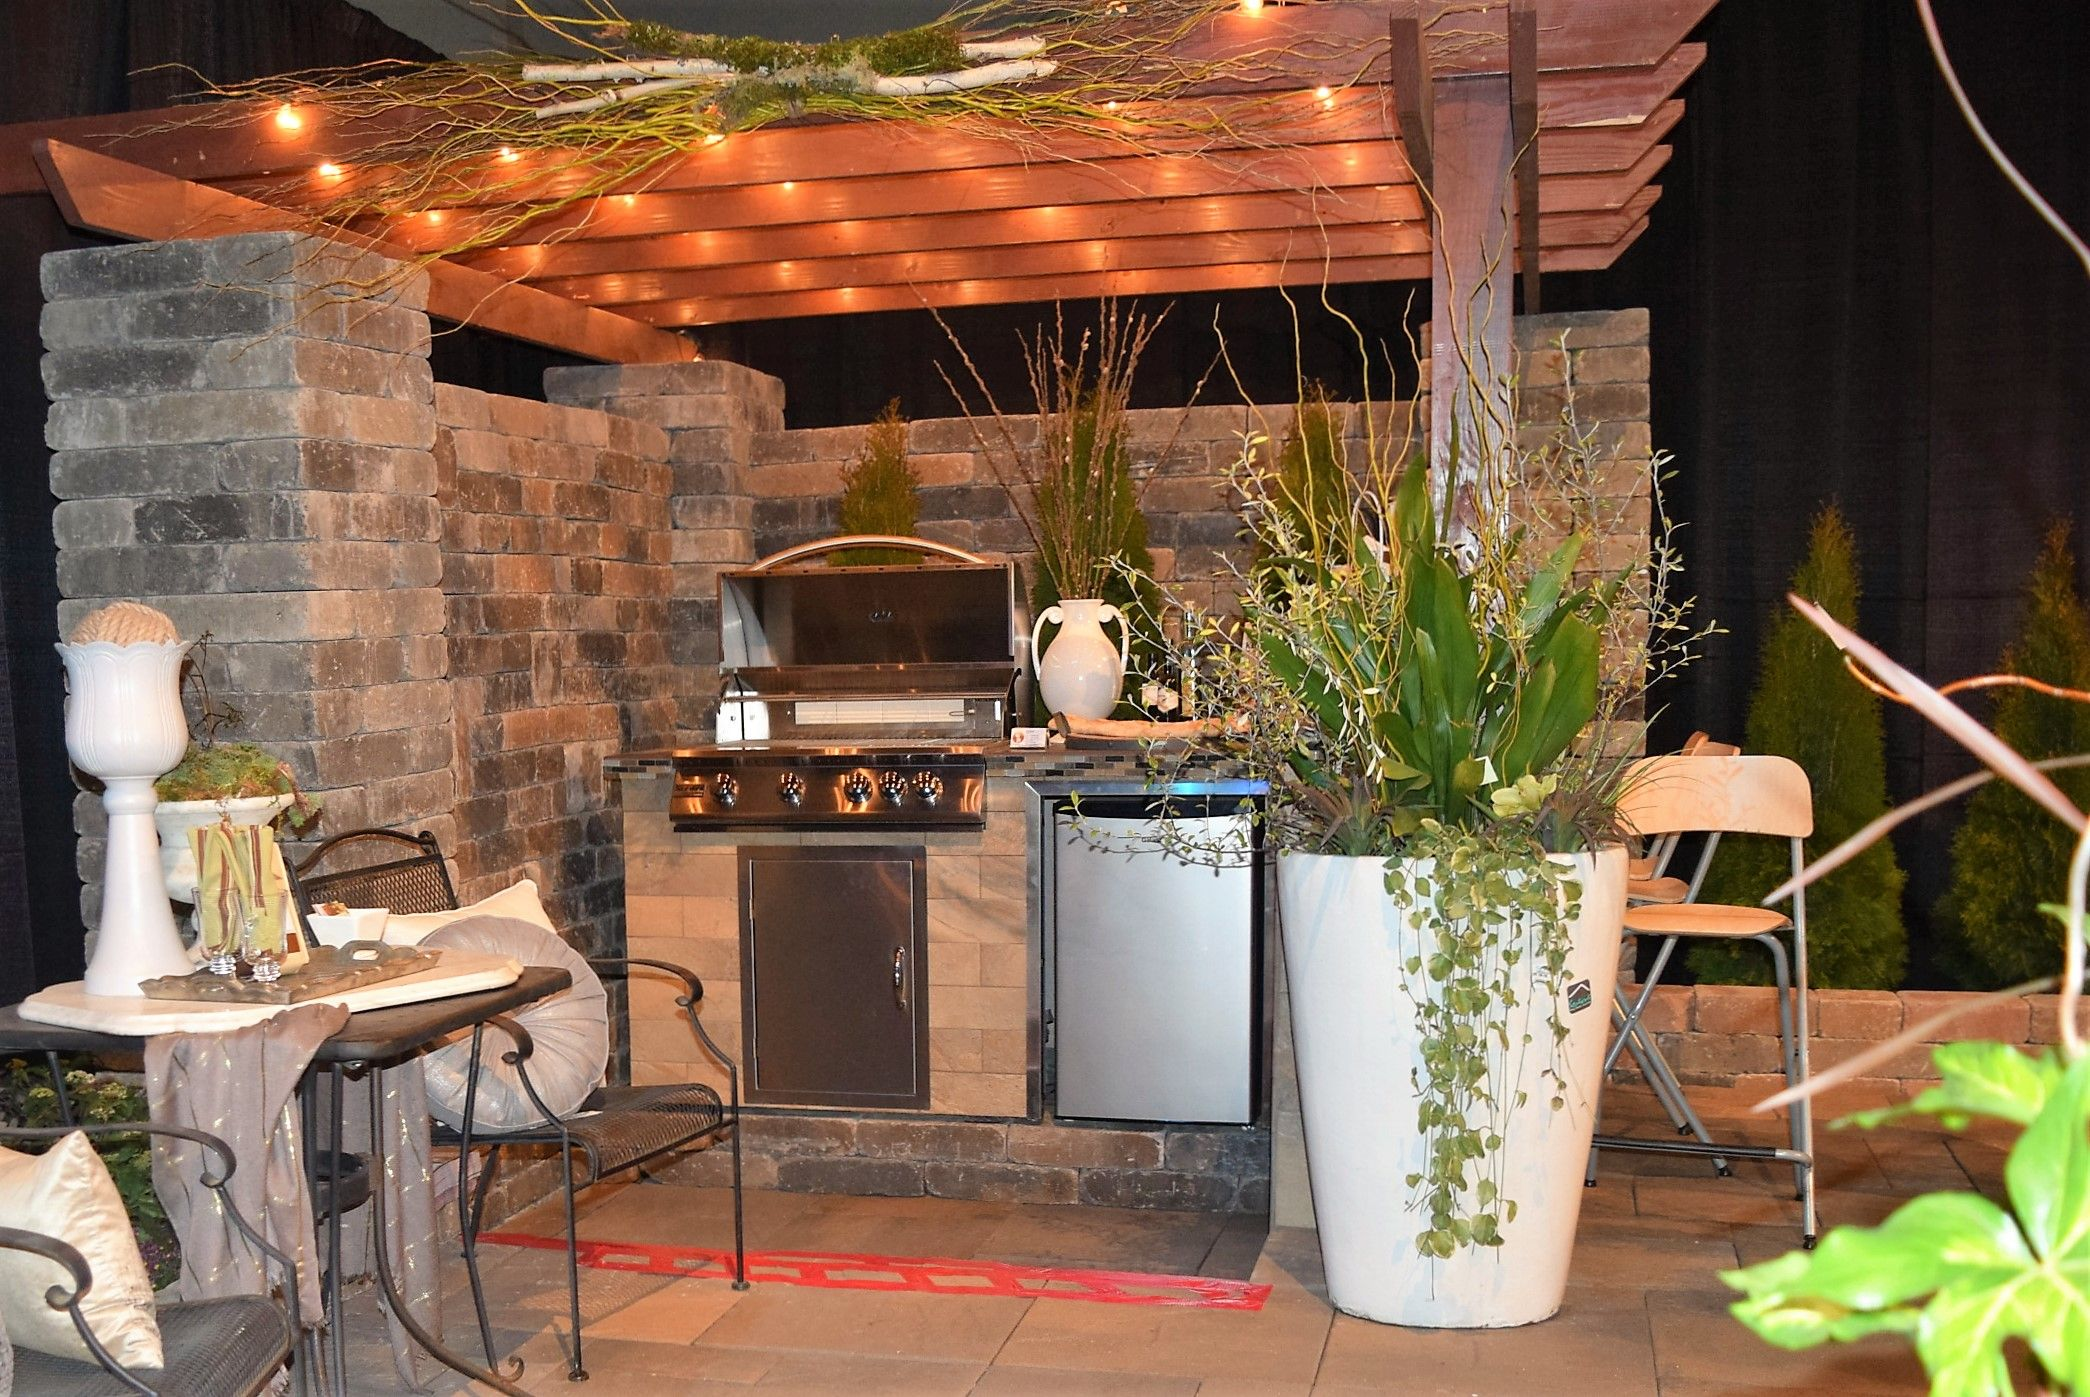 Thank You Portland Oregon The Yard Garden Patio Home Show Was Fantastic We Look Forward To Working Wi Outdoor Living Design Patio Decor Outdoor Kitchen